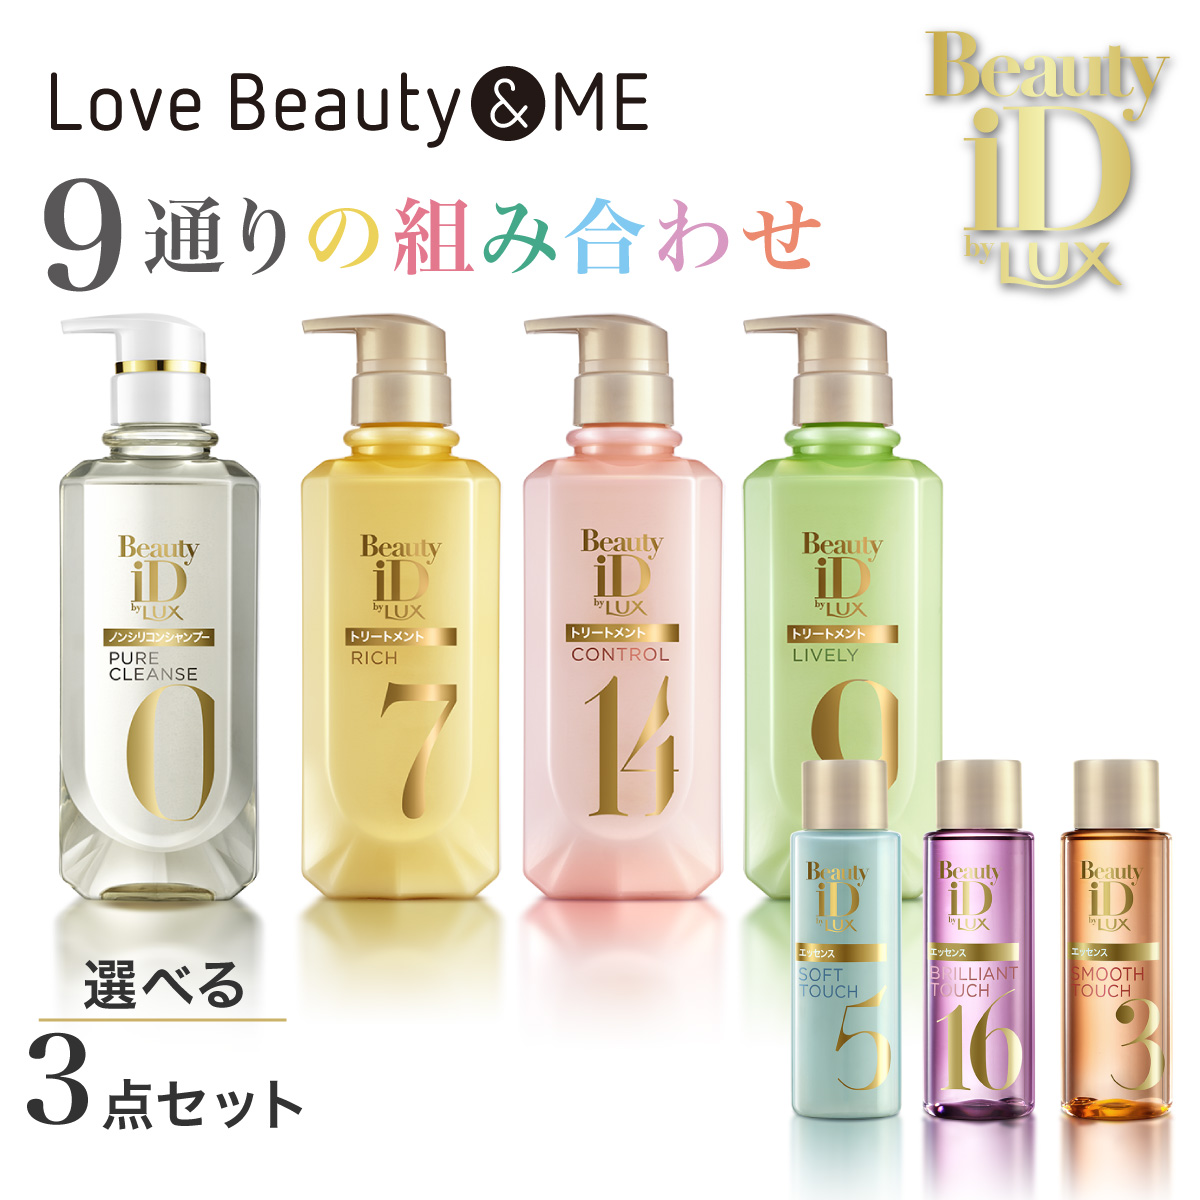 Beauty iD by LUX 9通りから選べるセット